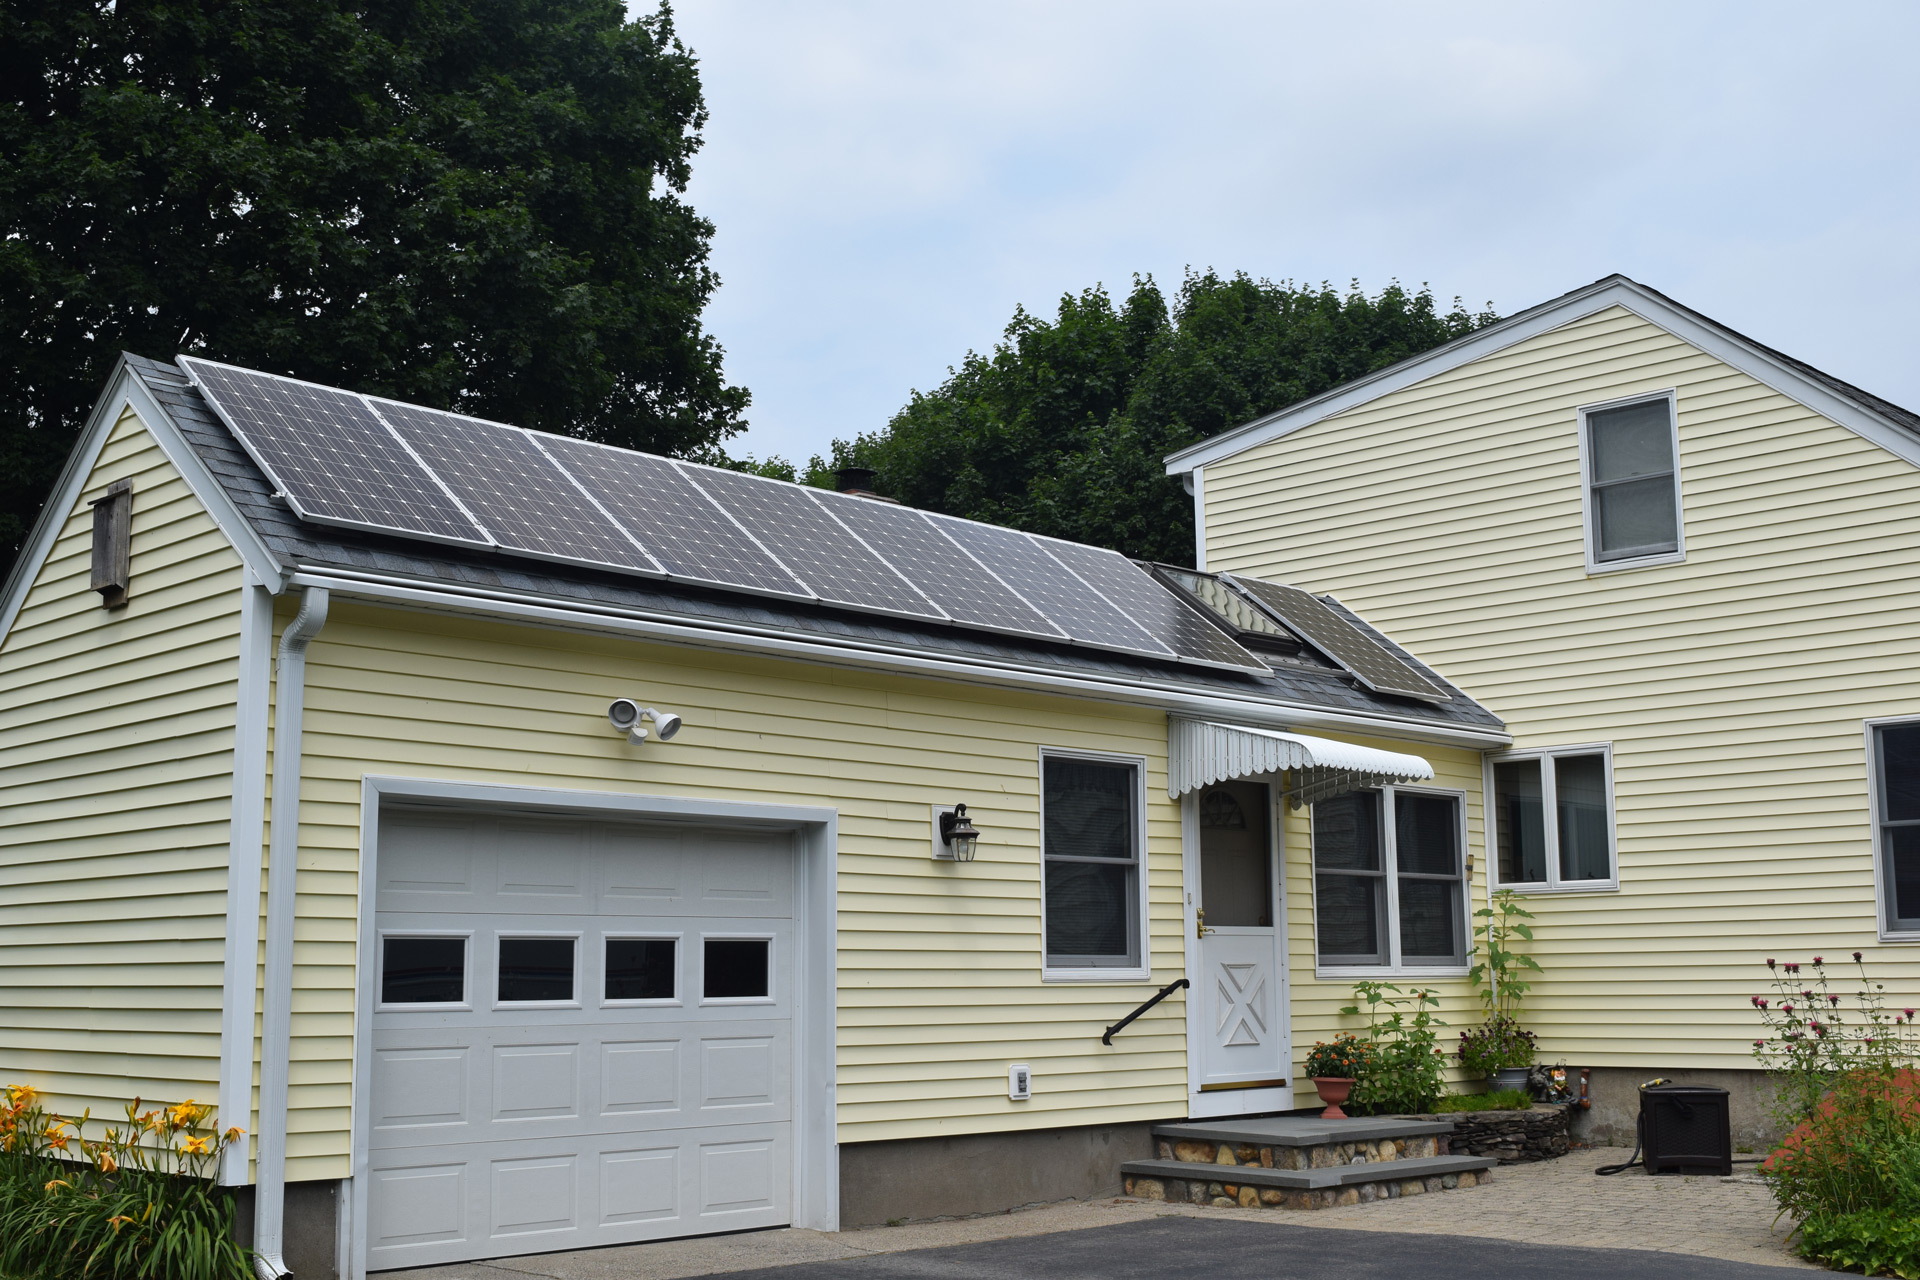 Solar panels on a residential property